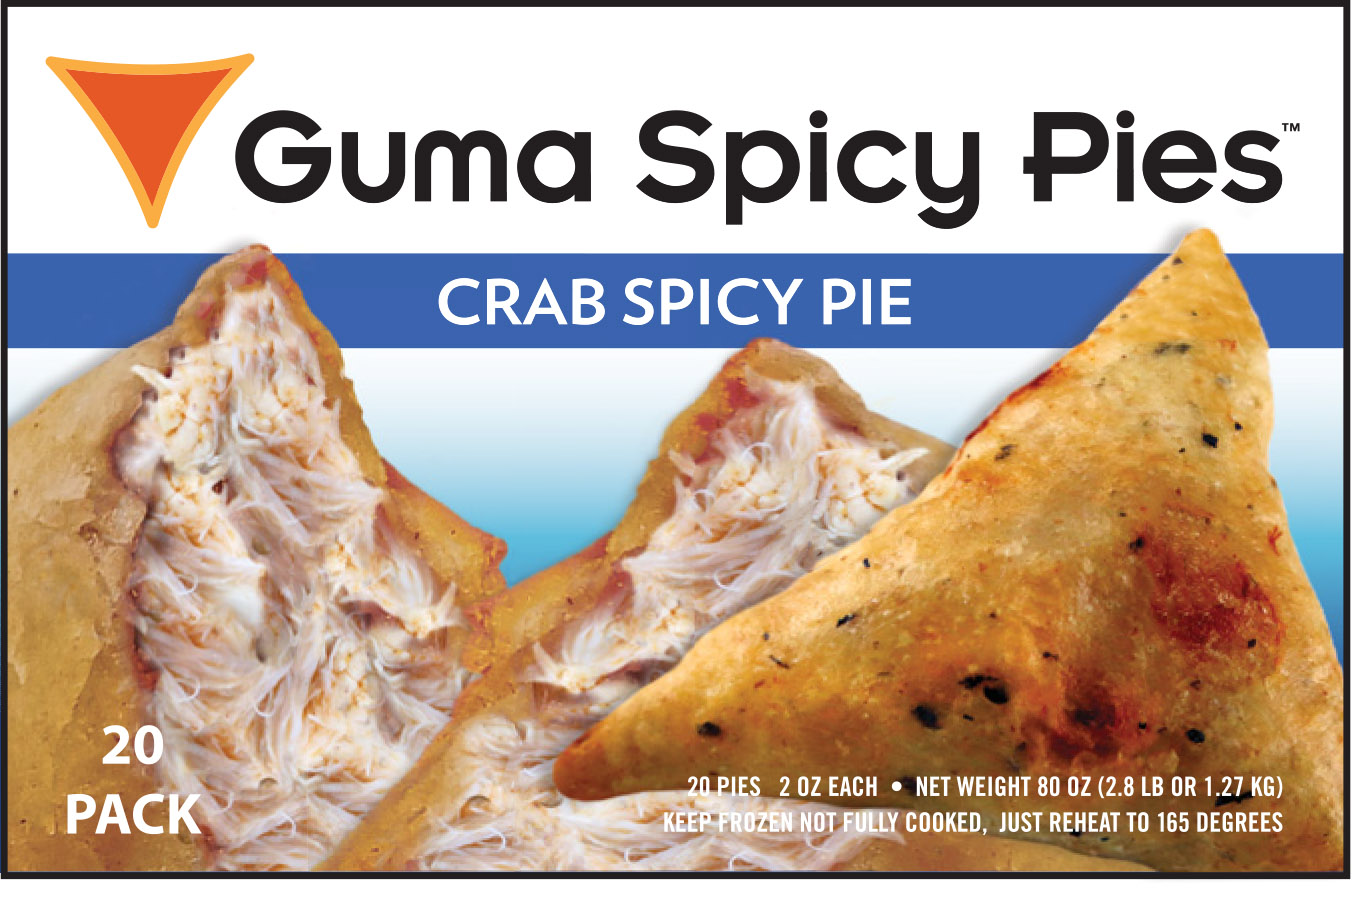 Guma Spicy Pie - Crab Spicy Pie